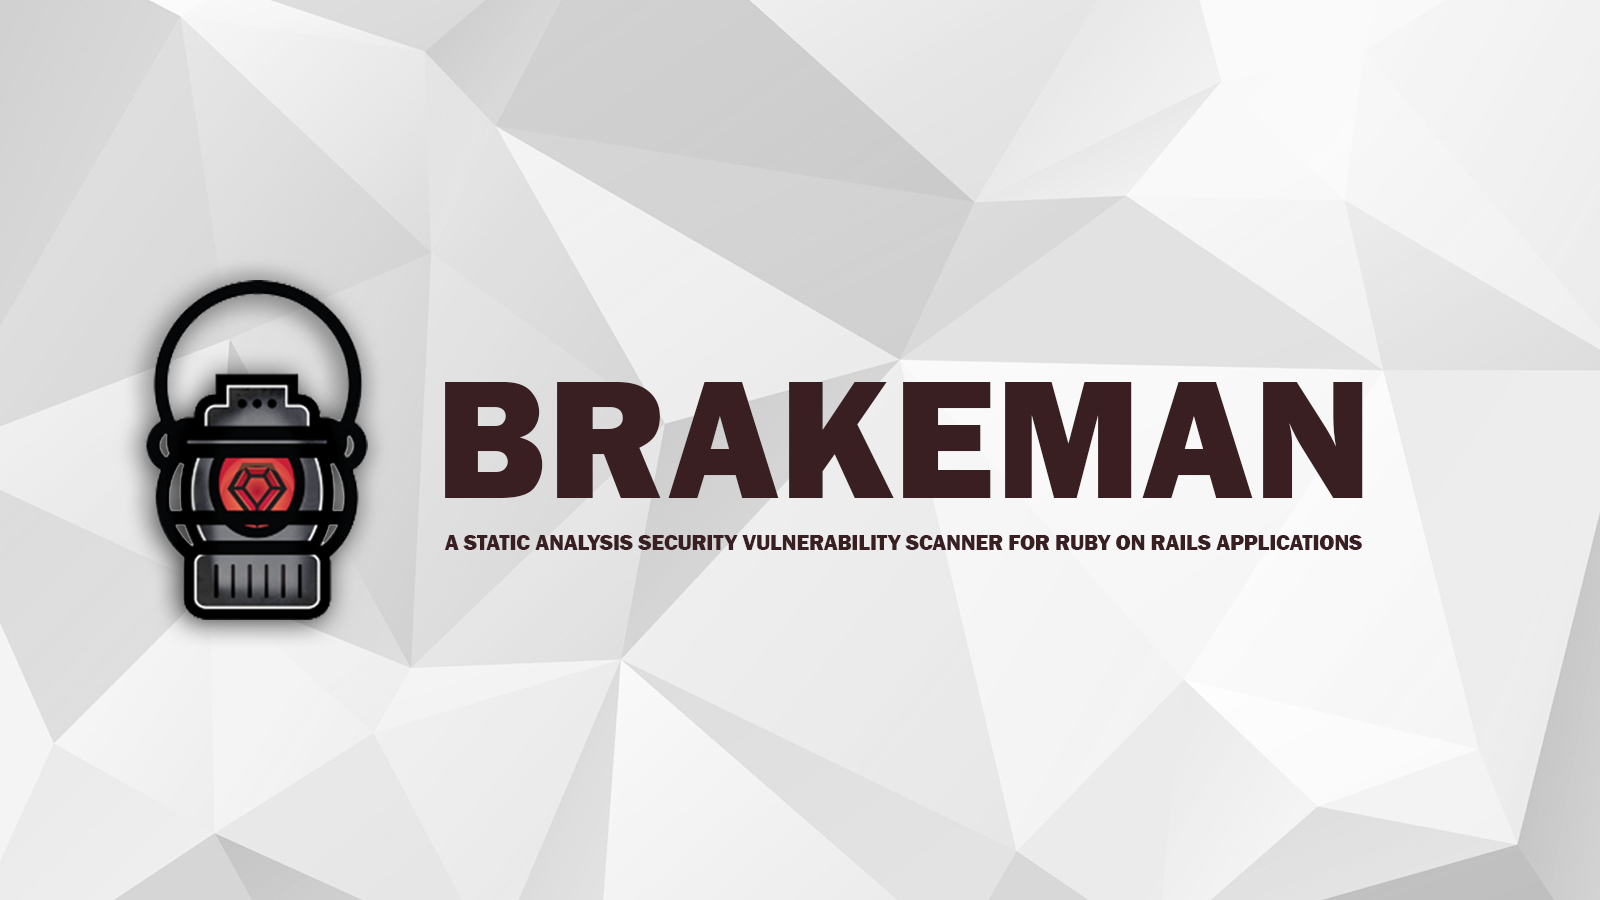 Brakeman - A Static Analysis Security Vulnerability Scanner For Ruby on Rails Applications